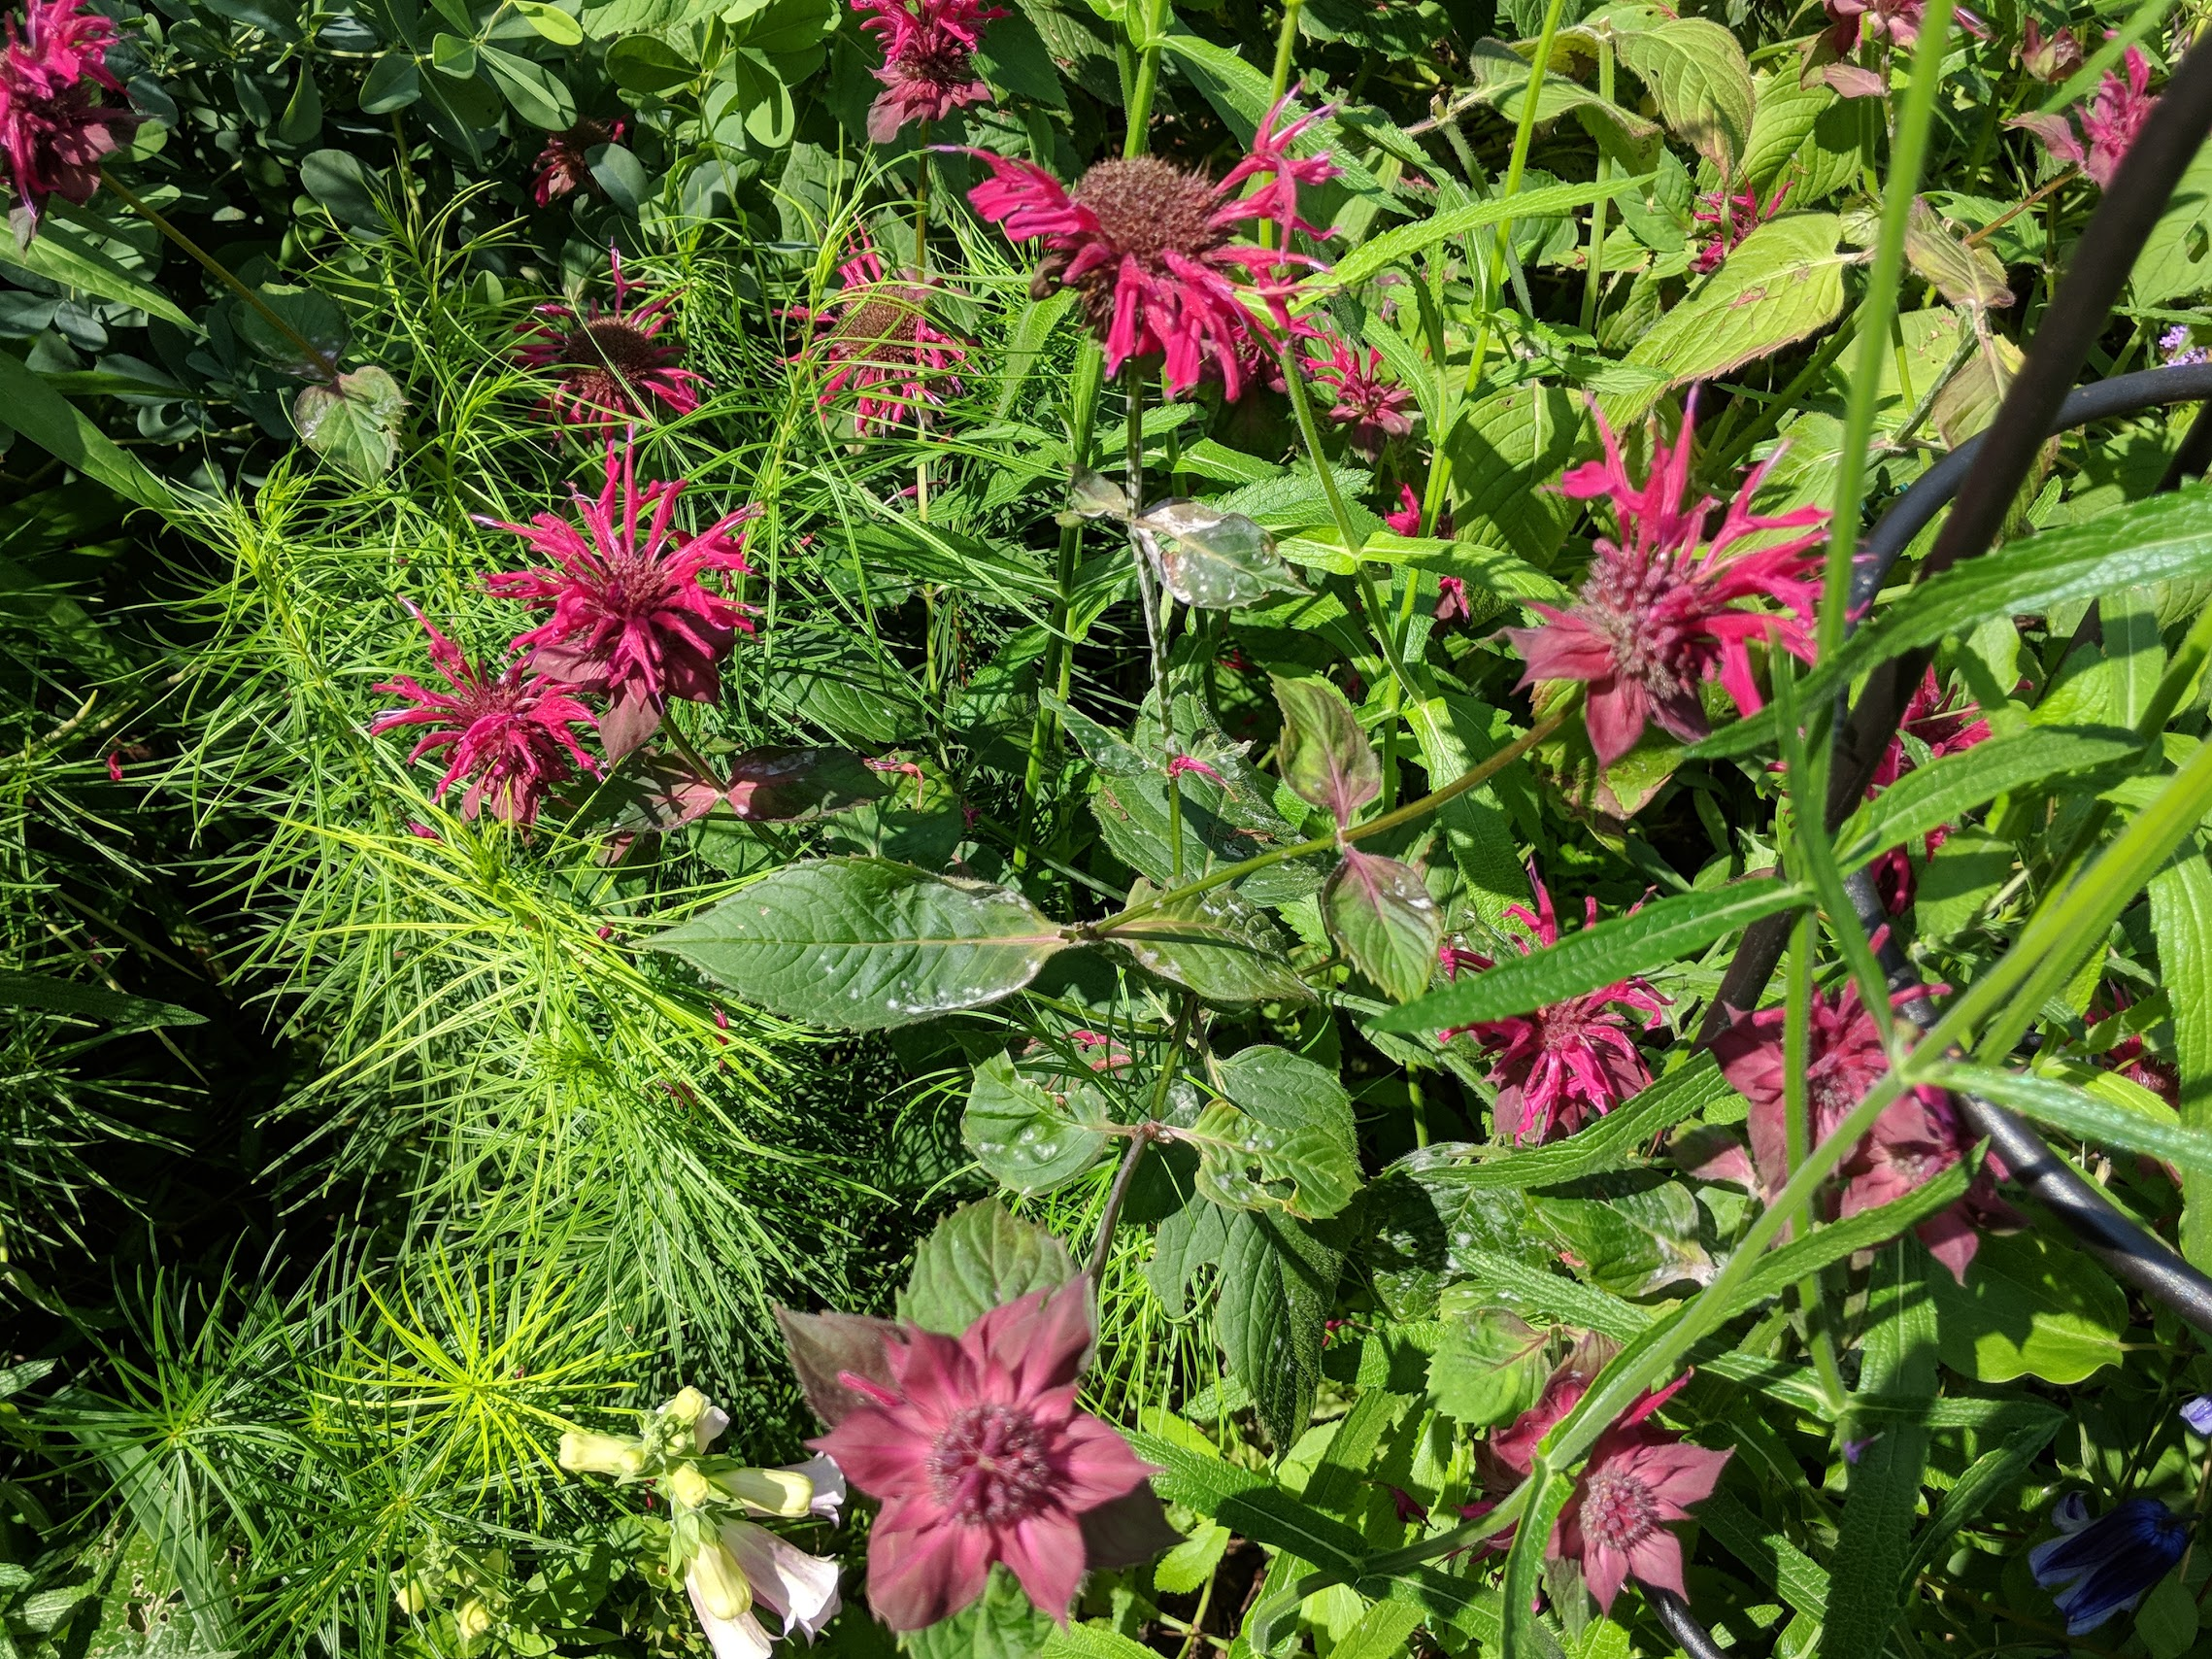 Monarda 'Raspberry Wine' with slight sign of powdery mildew that was stopped with an immediate application of Serenade